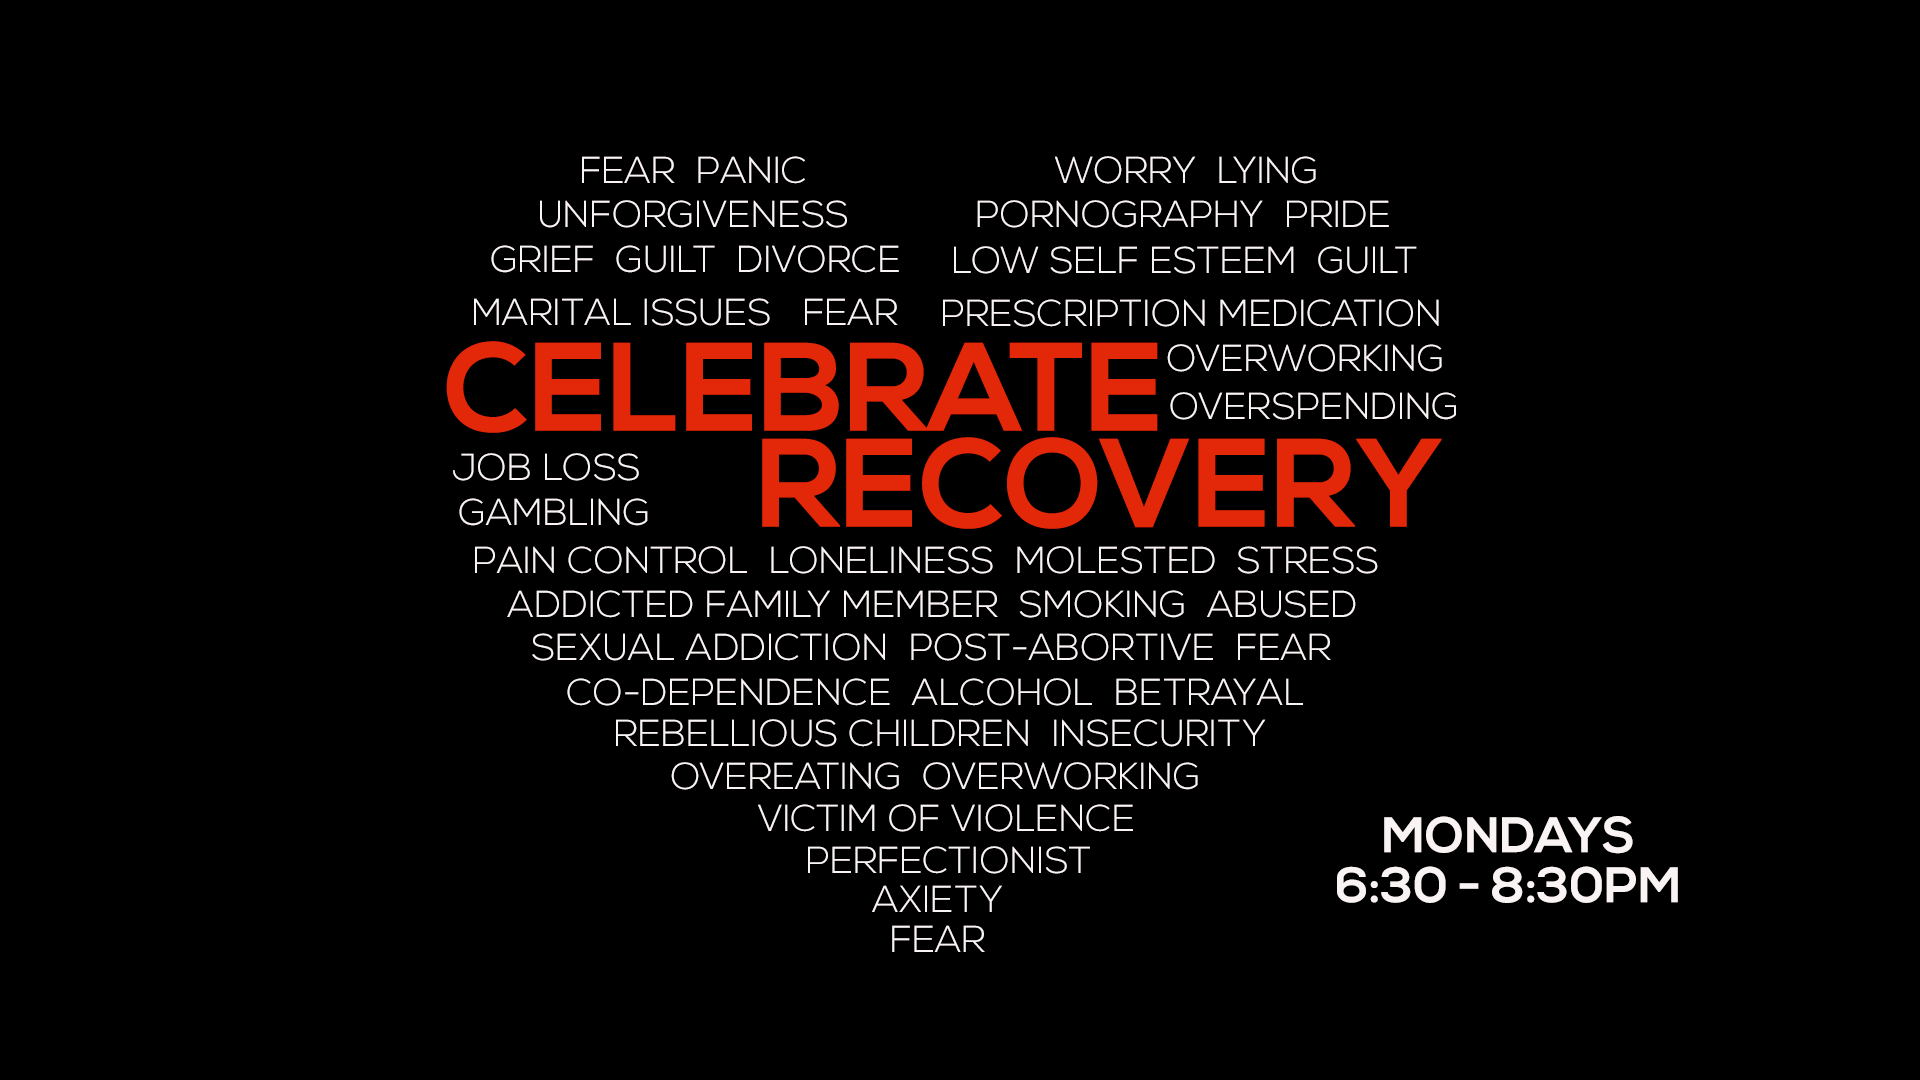 celebrate recovery heart slide image